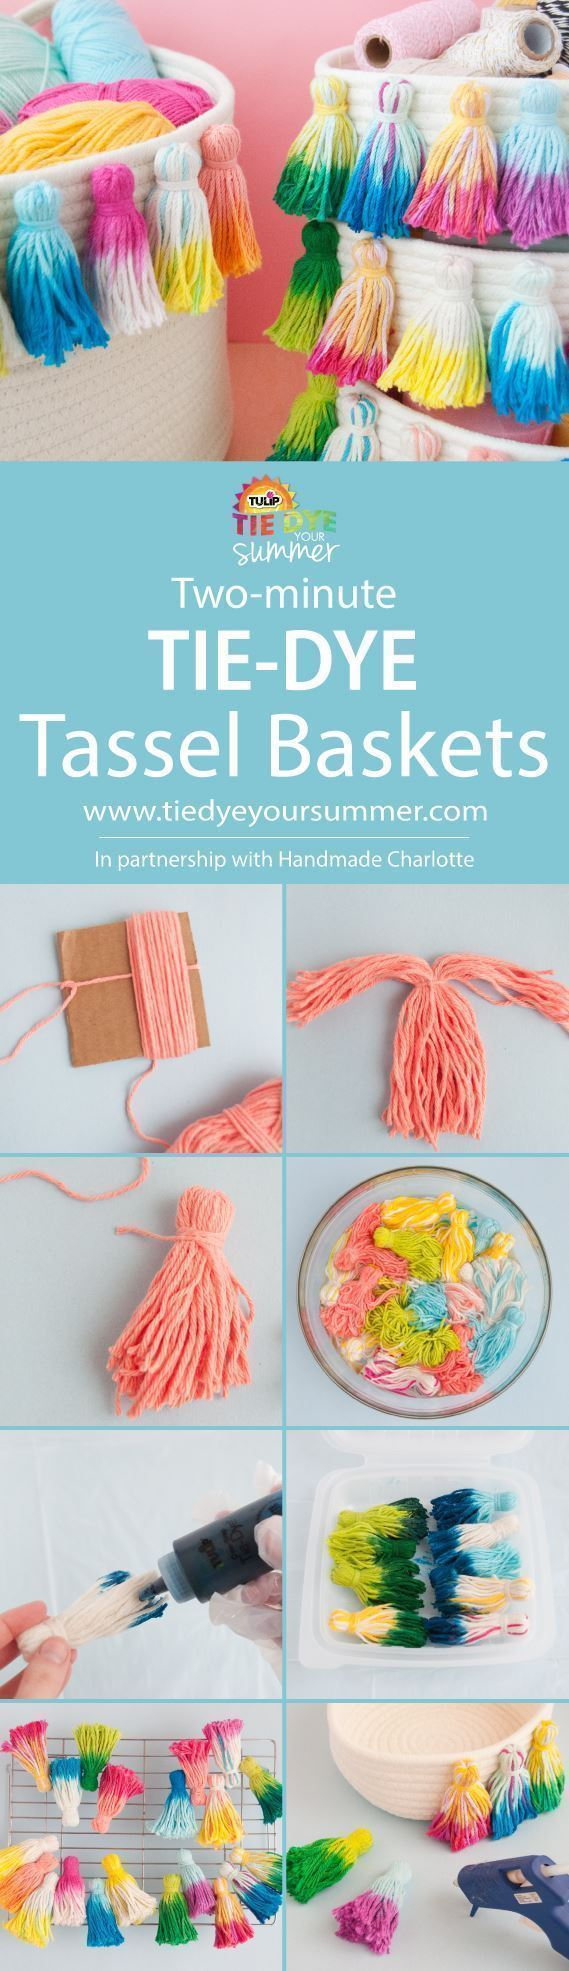 Tie-Dye Tassel Baskets with Tulip Two-Minute Tie Dye